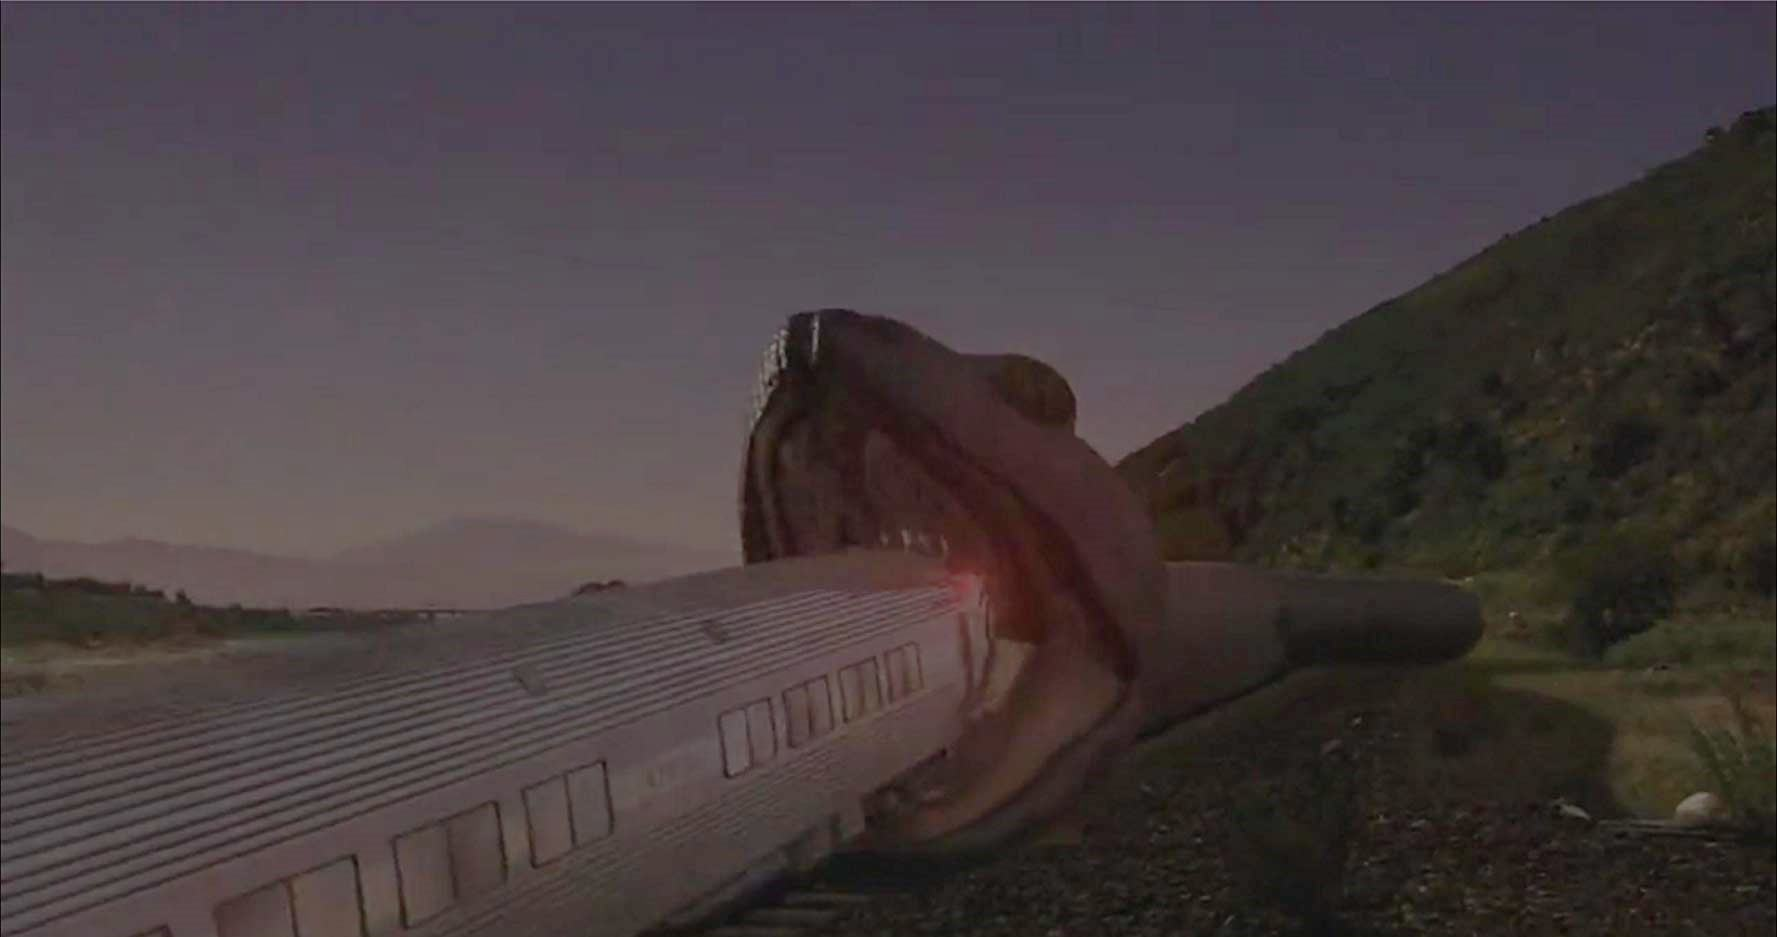 A giant snake tries to devour the train in Snakes on a Train (2006)